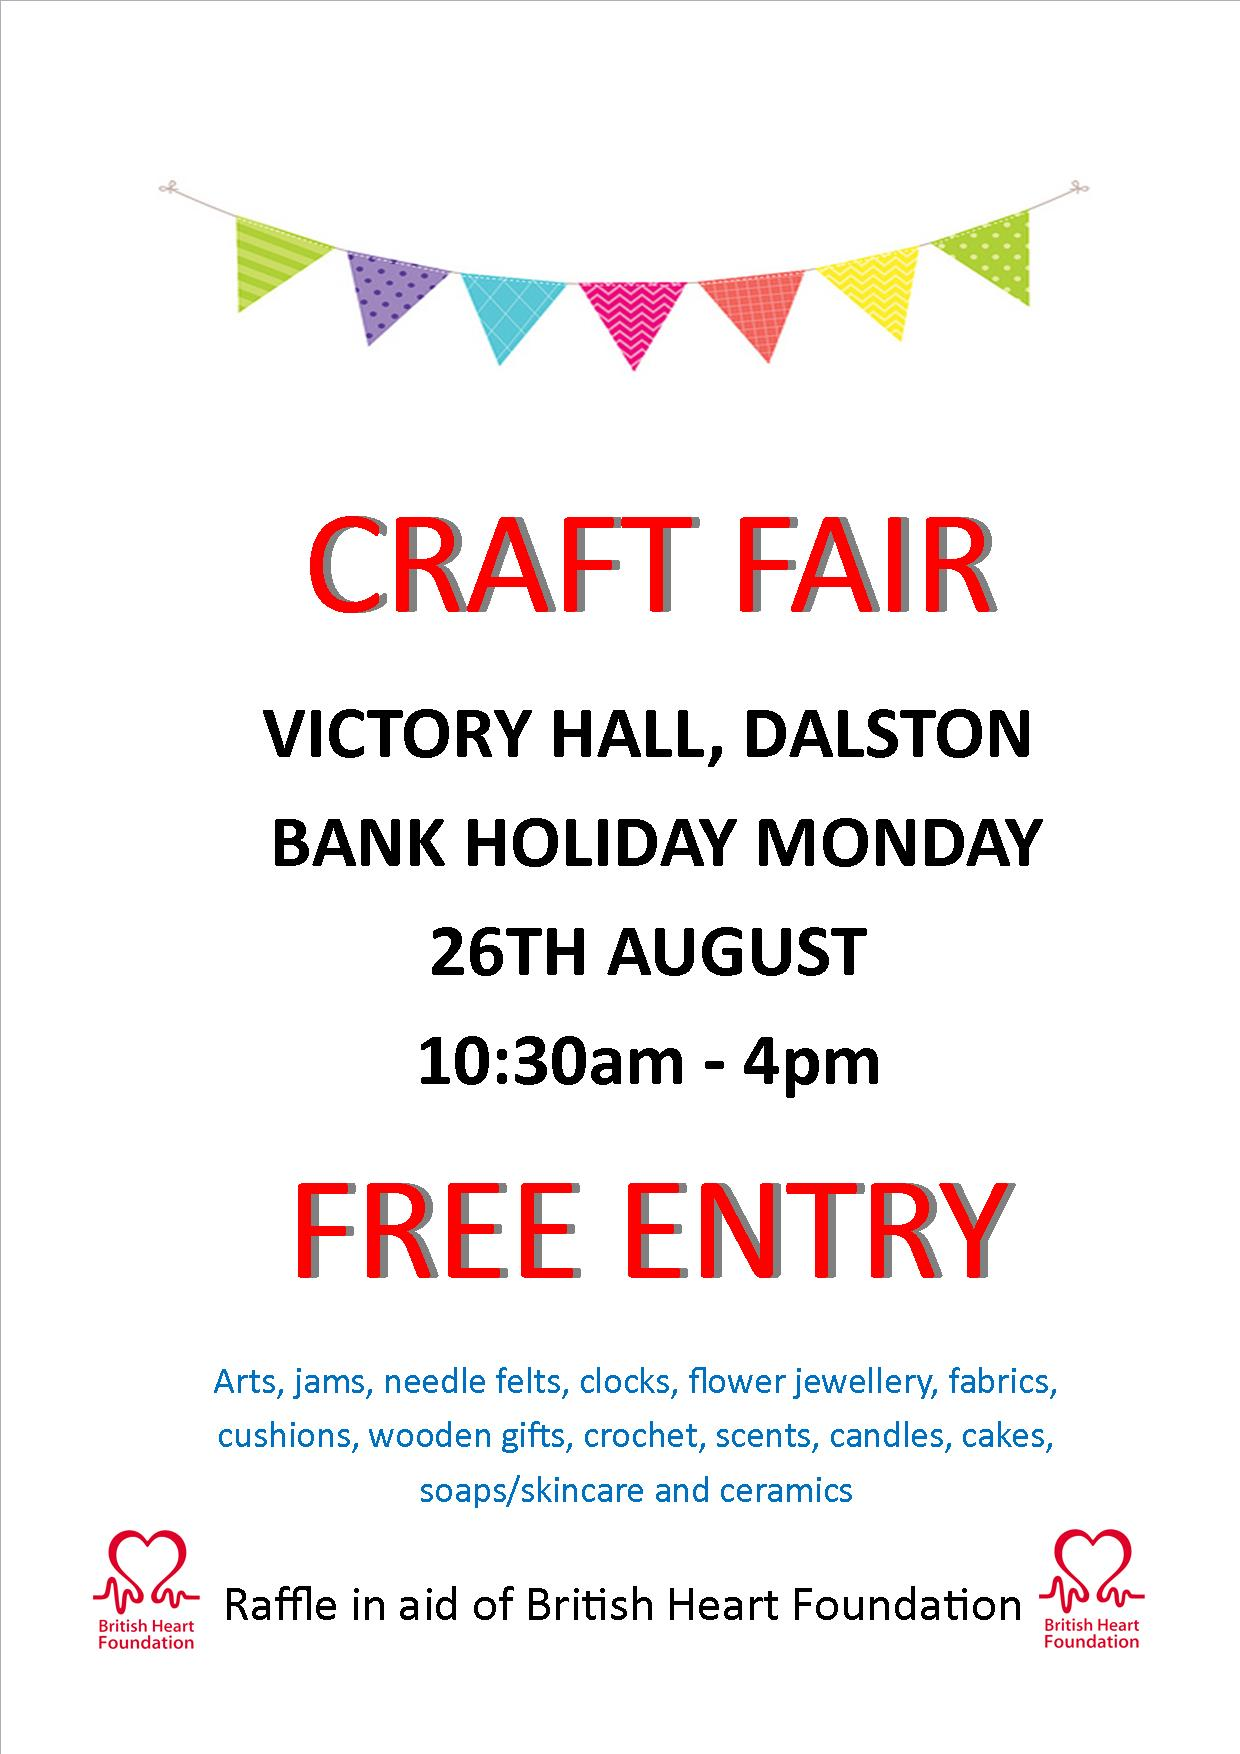 Dalston Craft Fair